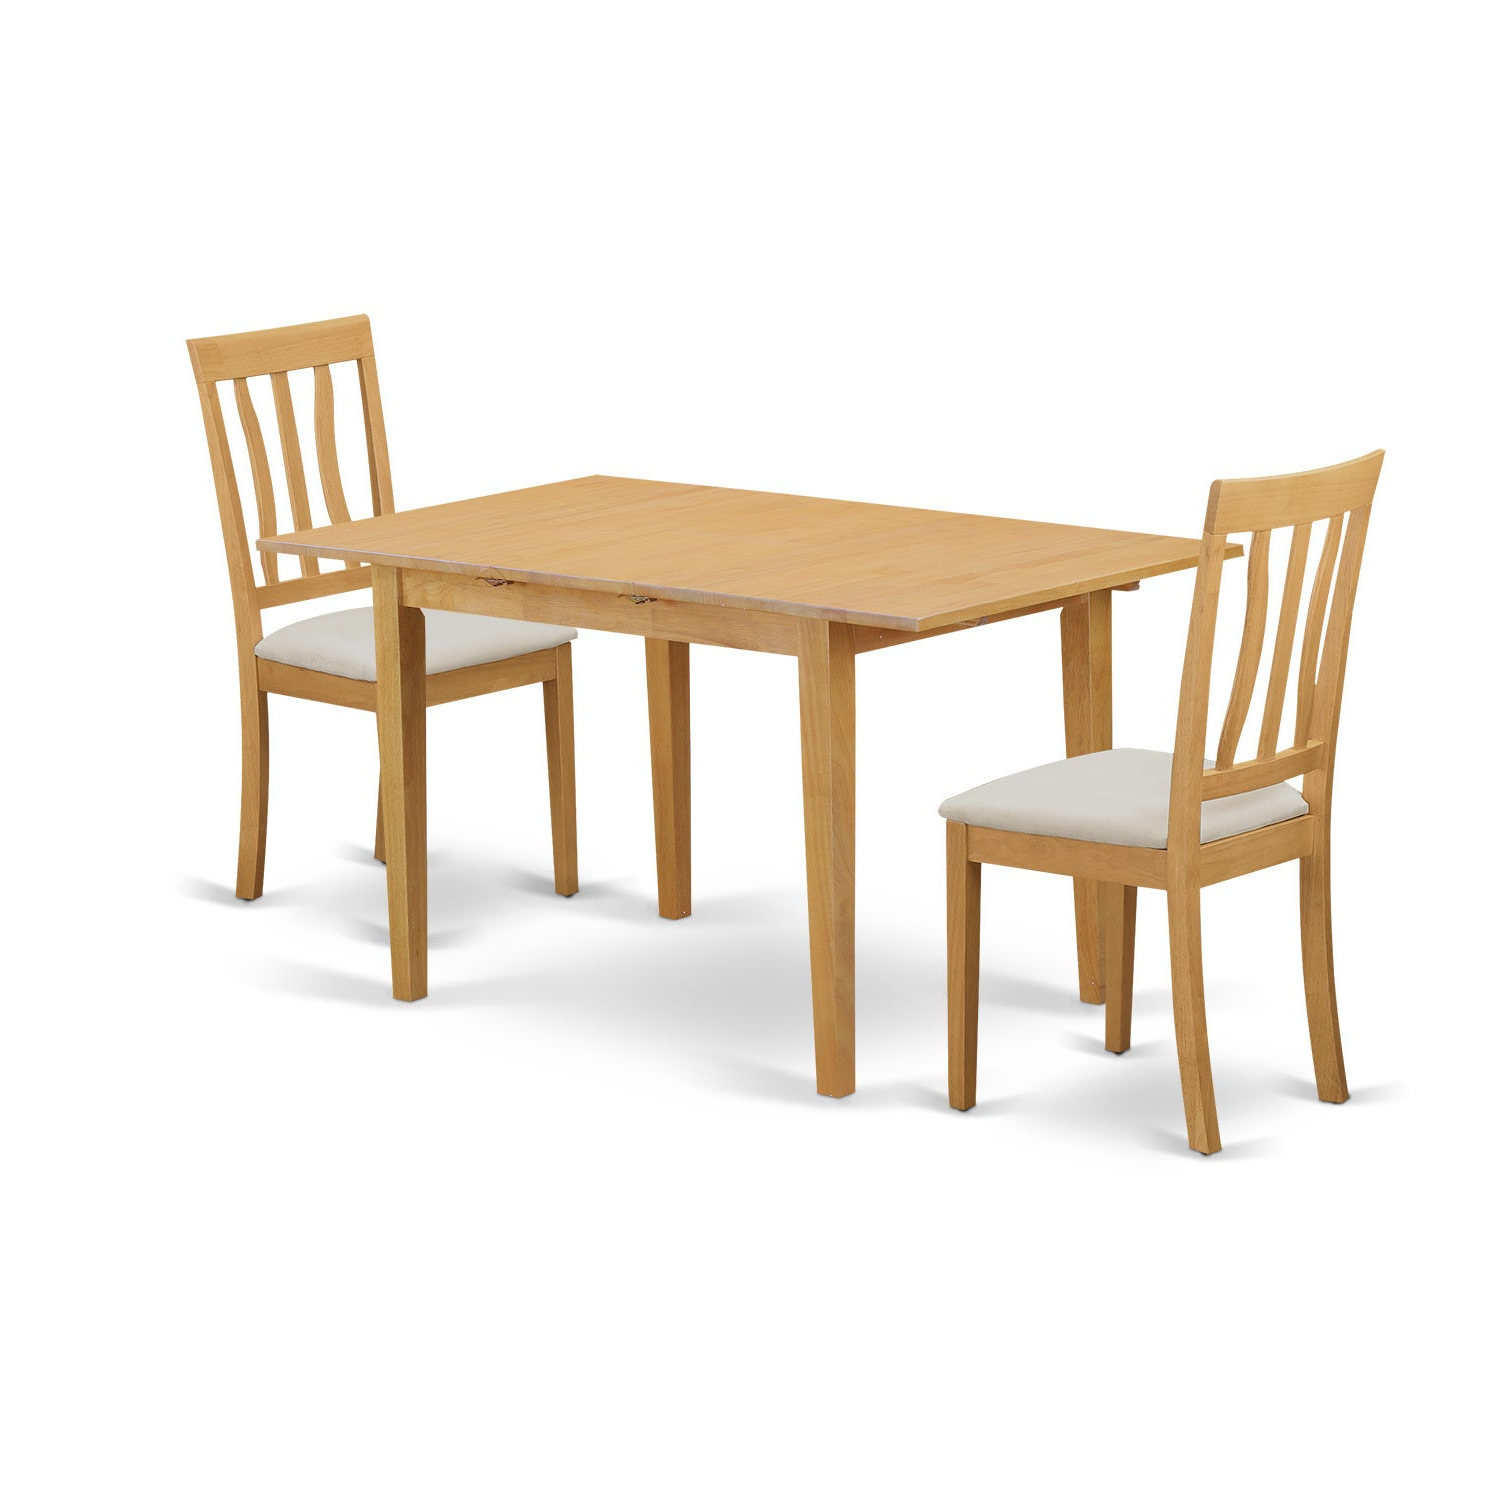 Noan3-C 3 Piece Dining Table Set - Small Dining Table And 2 Kitchen Chair with Most Recently Released 3 Pieces Dining Tables And Chair Set